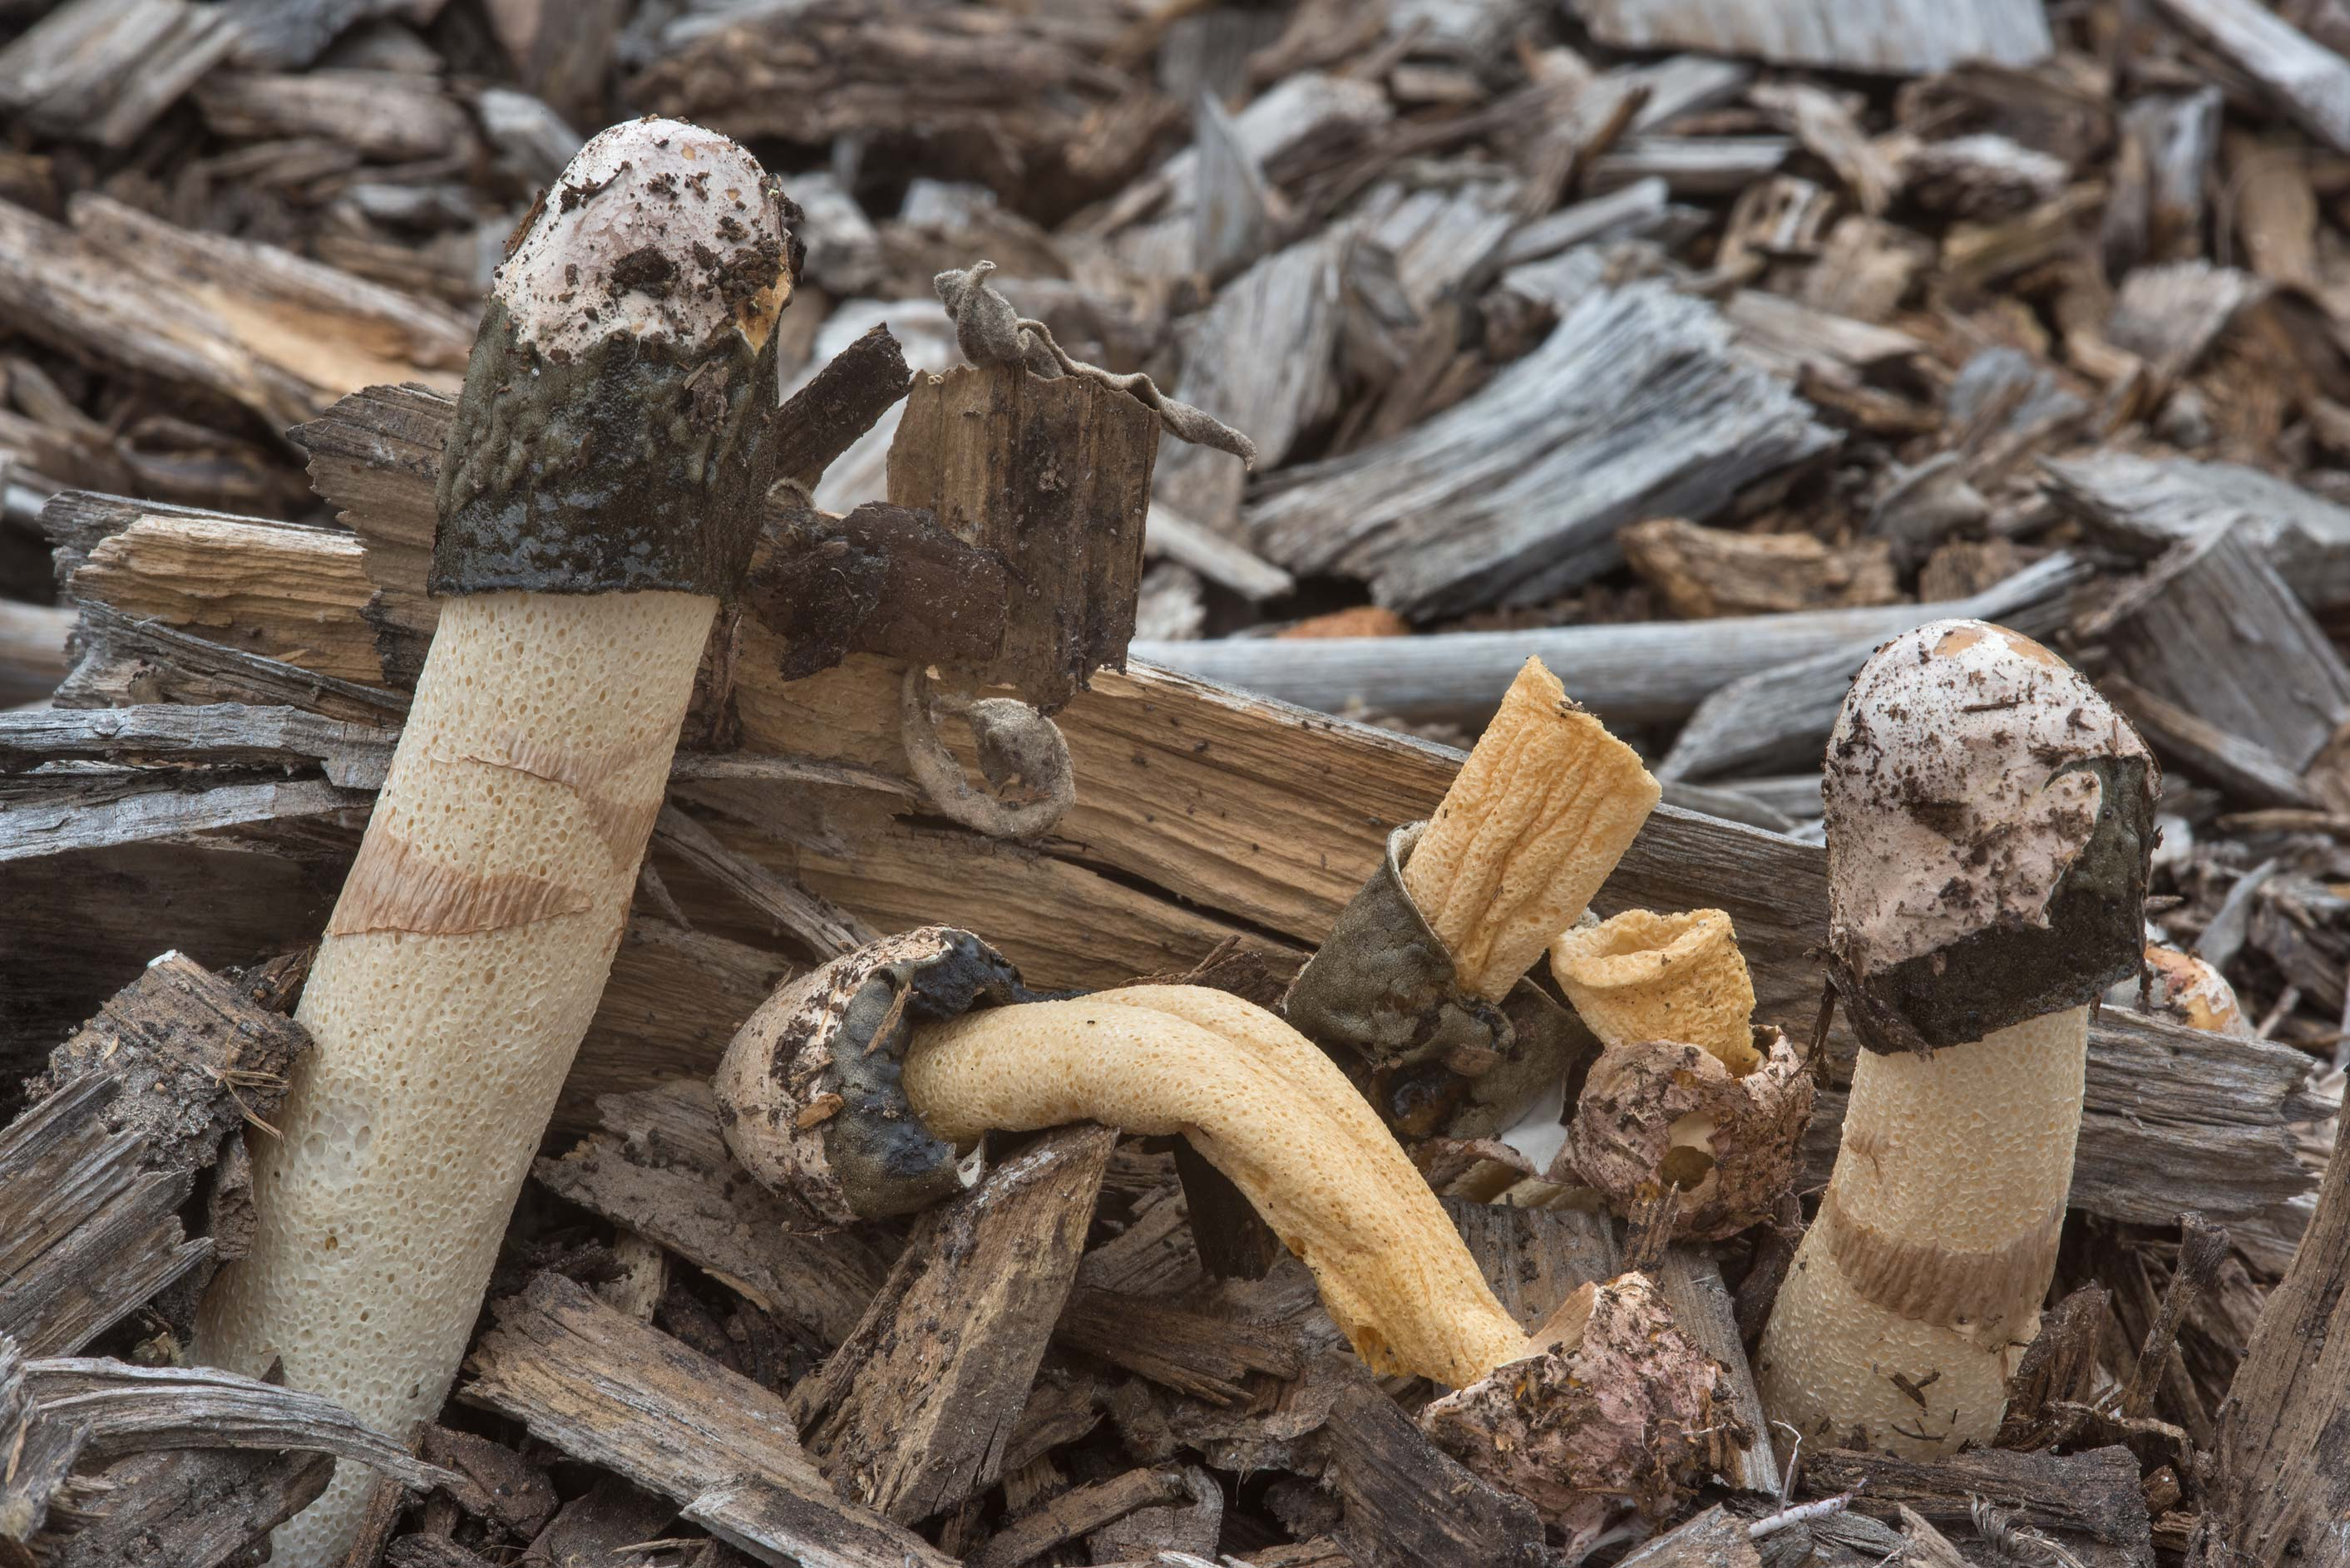 Common stinkhorn mushrooms (Phallus impudicus...in Bastrop State Park. Bastrop, Texas